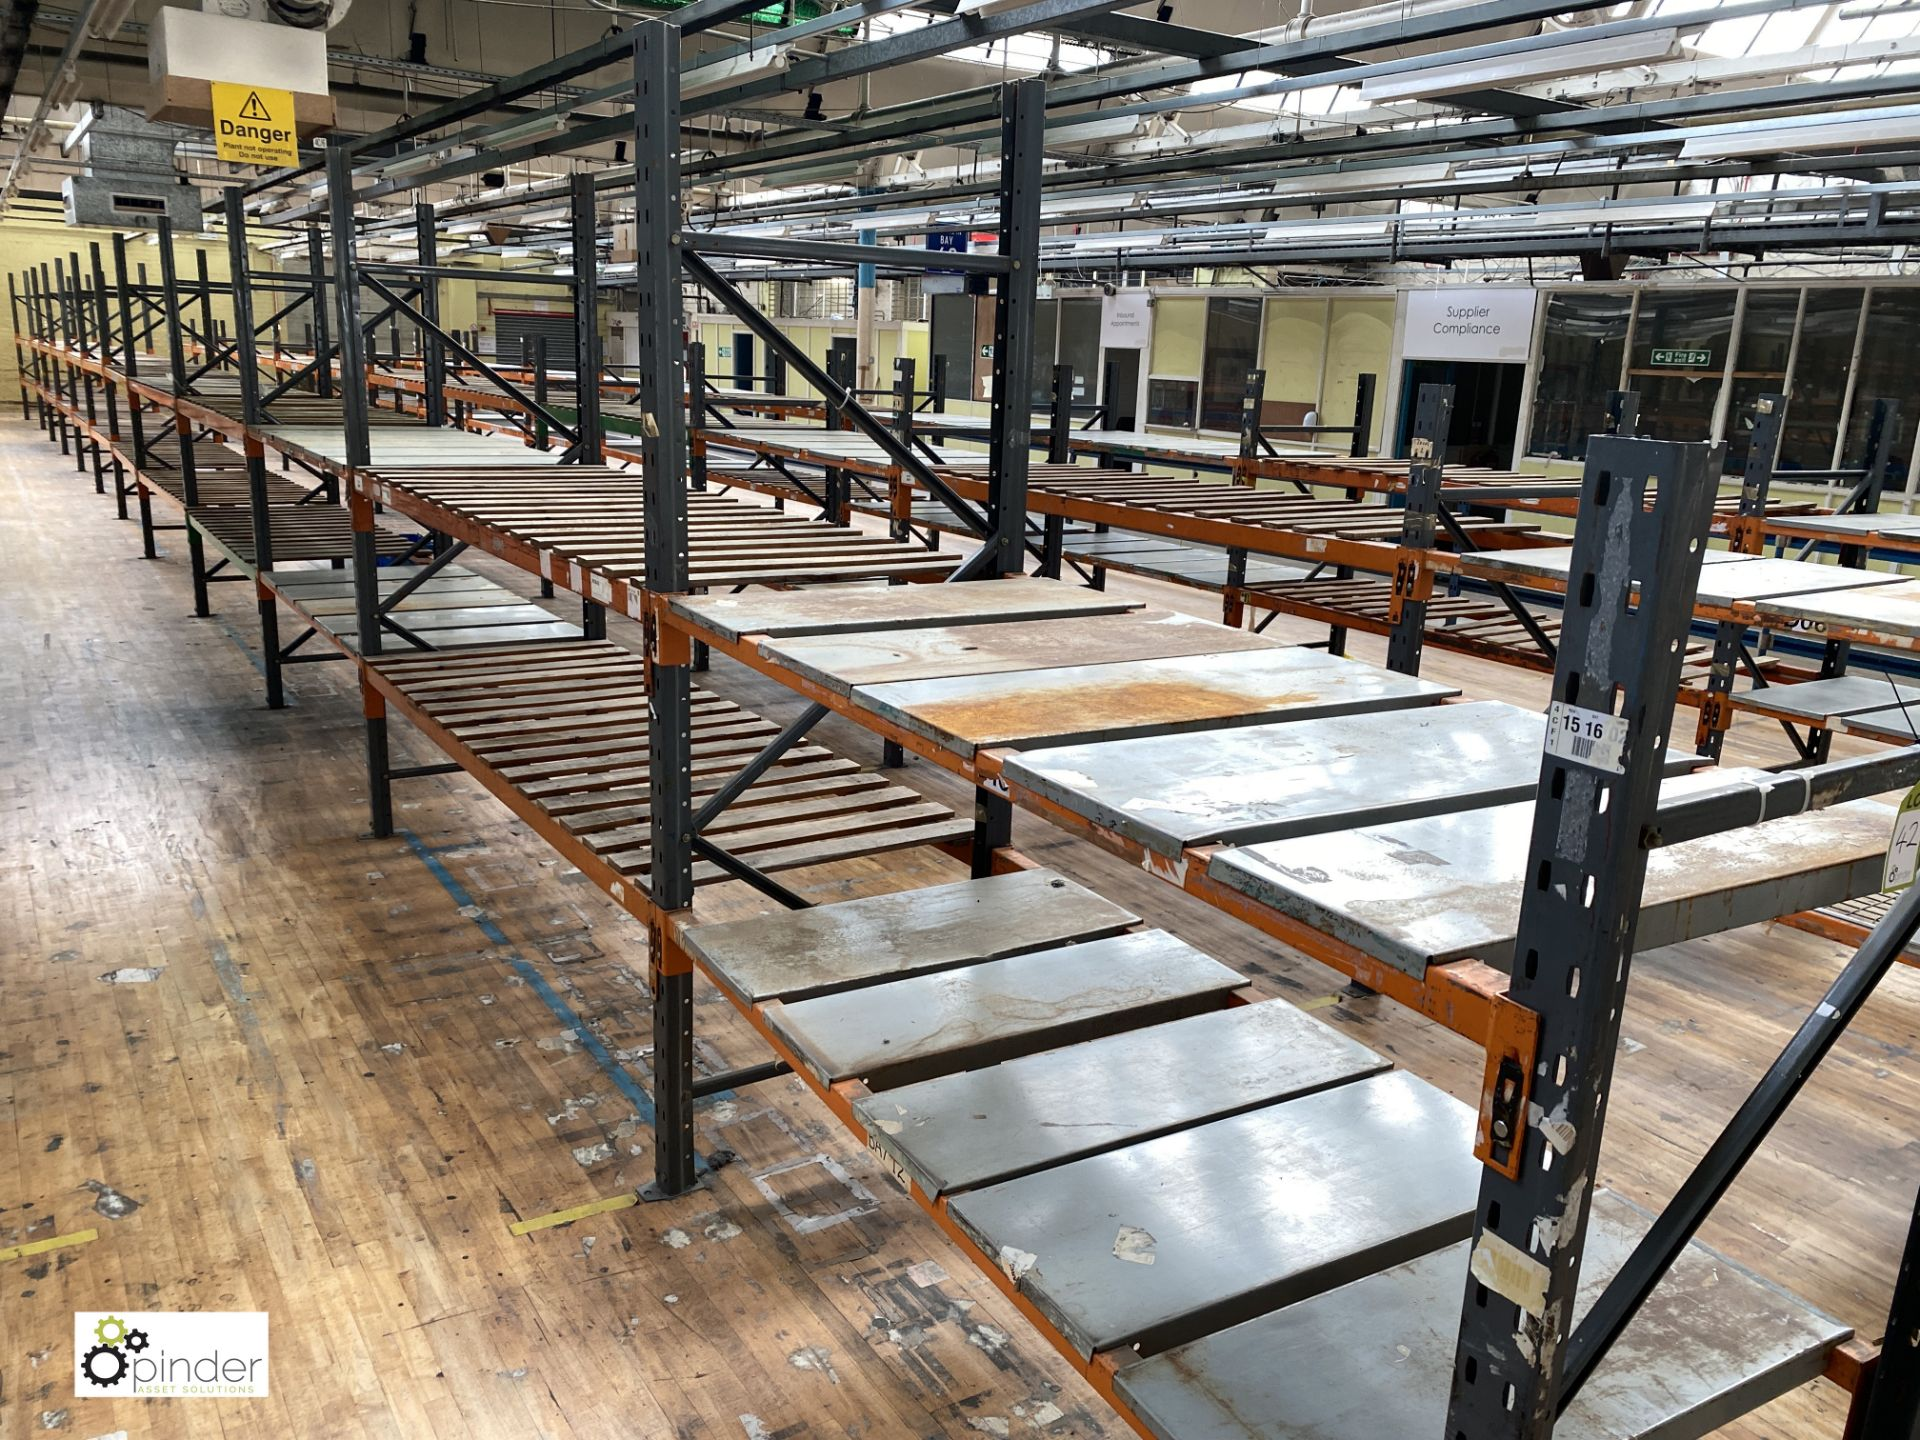 12 bays Dexion Speedlock boltless Racking, comprising 12 uprights 2440mm x 910mm, 1 upright 1835mm x - Image 2 of 5